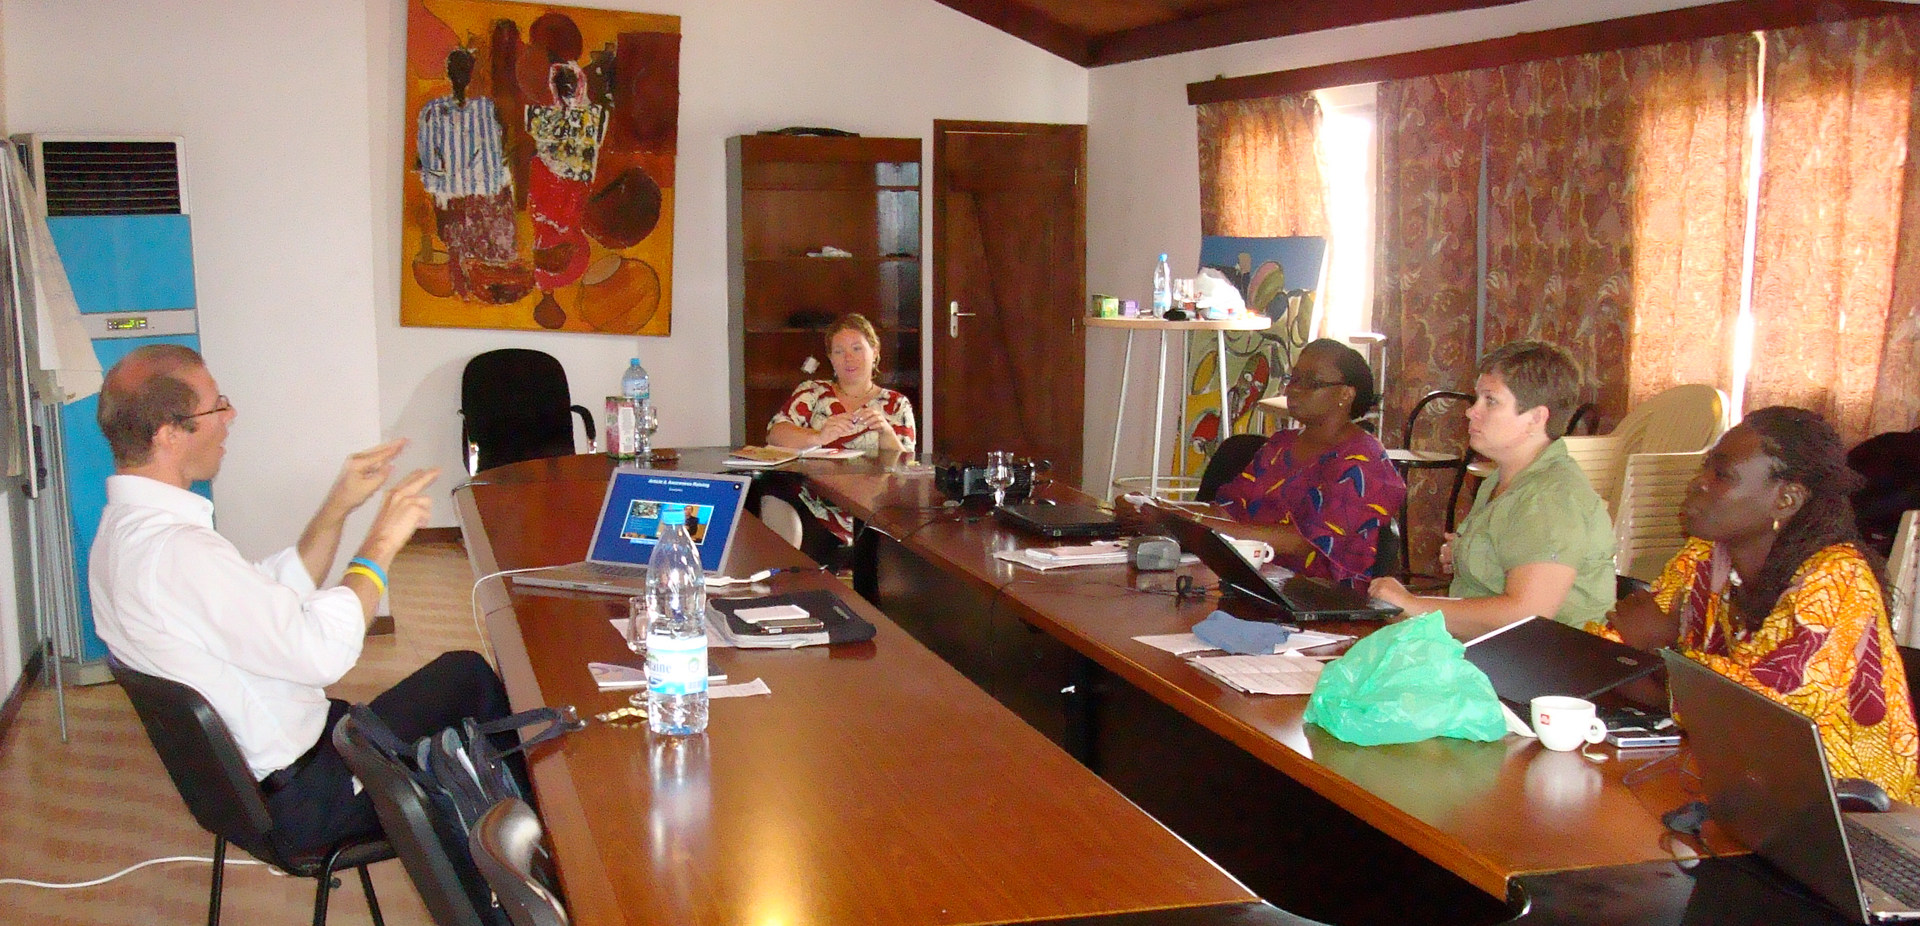 Expert trainer, sent from the WFD, for the Training of Trainers on Human Rights, UN CRPD, International instruments, Advocacy work from European/International perspectives and workshops to the trainers of West and Central Africa - Dakar, Senegal - August / September 2010